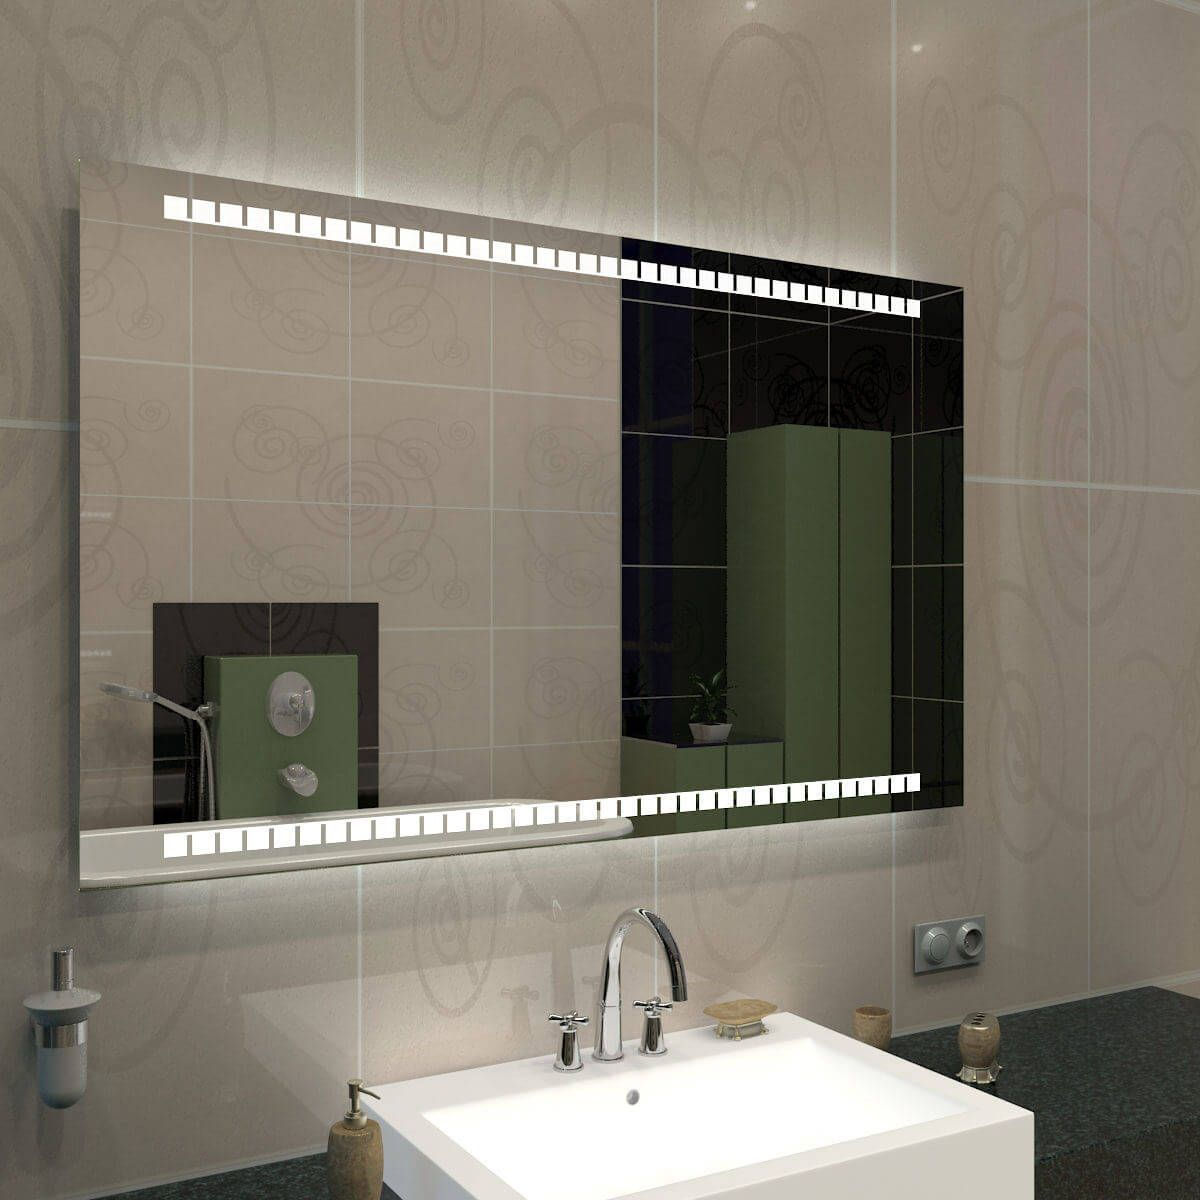 Spiegel Beleuchtet Touch V Thumbnail Bathroom Mirror Lighted Bathroom Mirror Bathroom Lighting